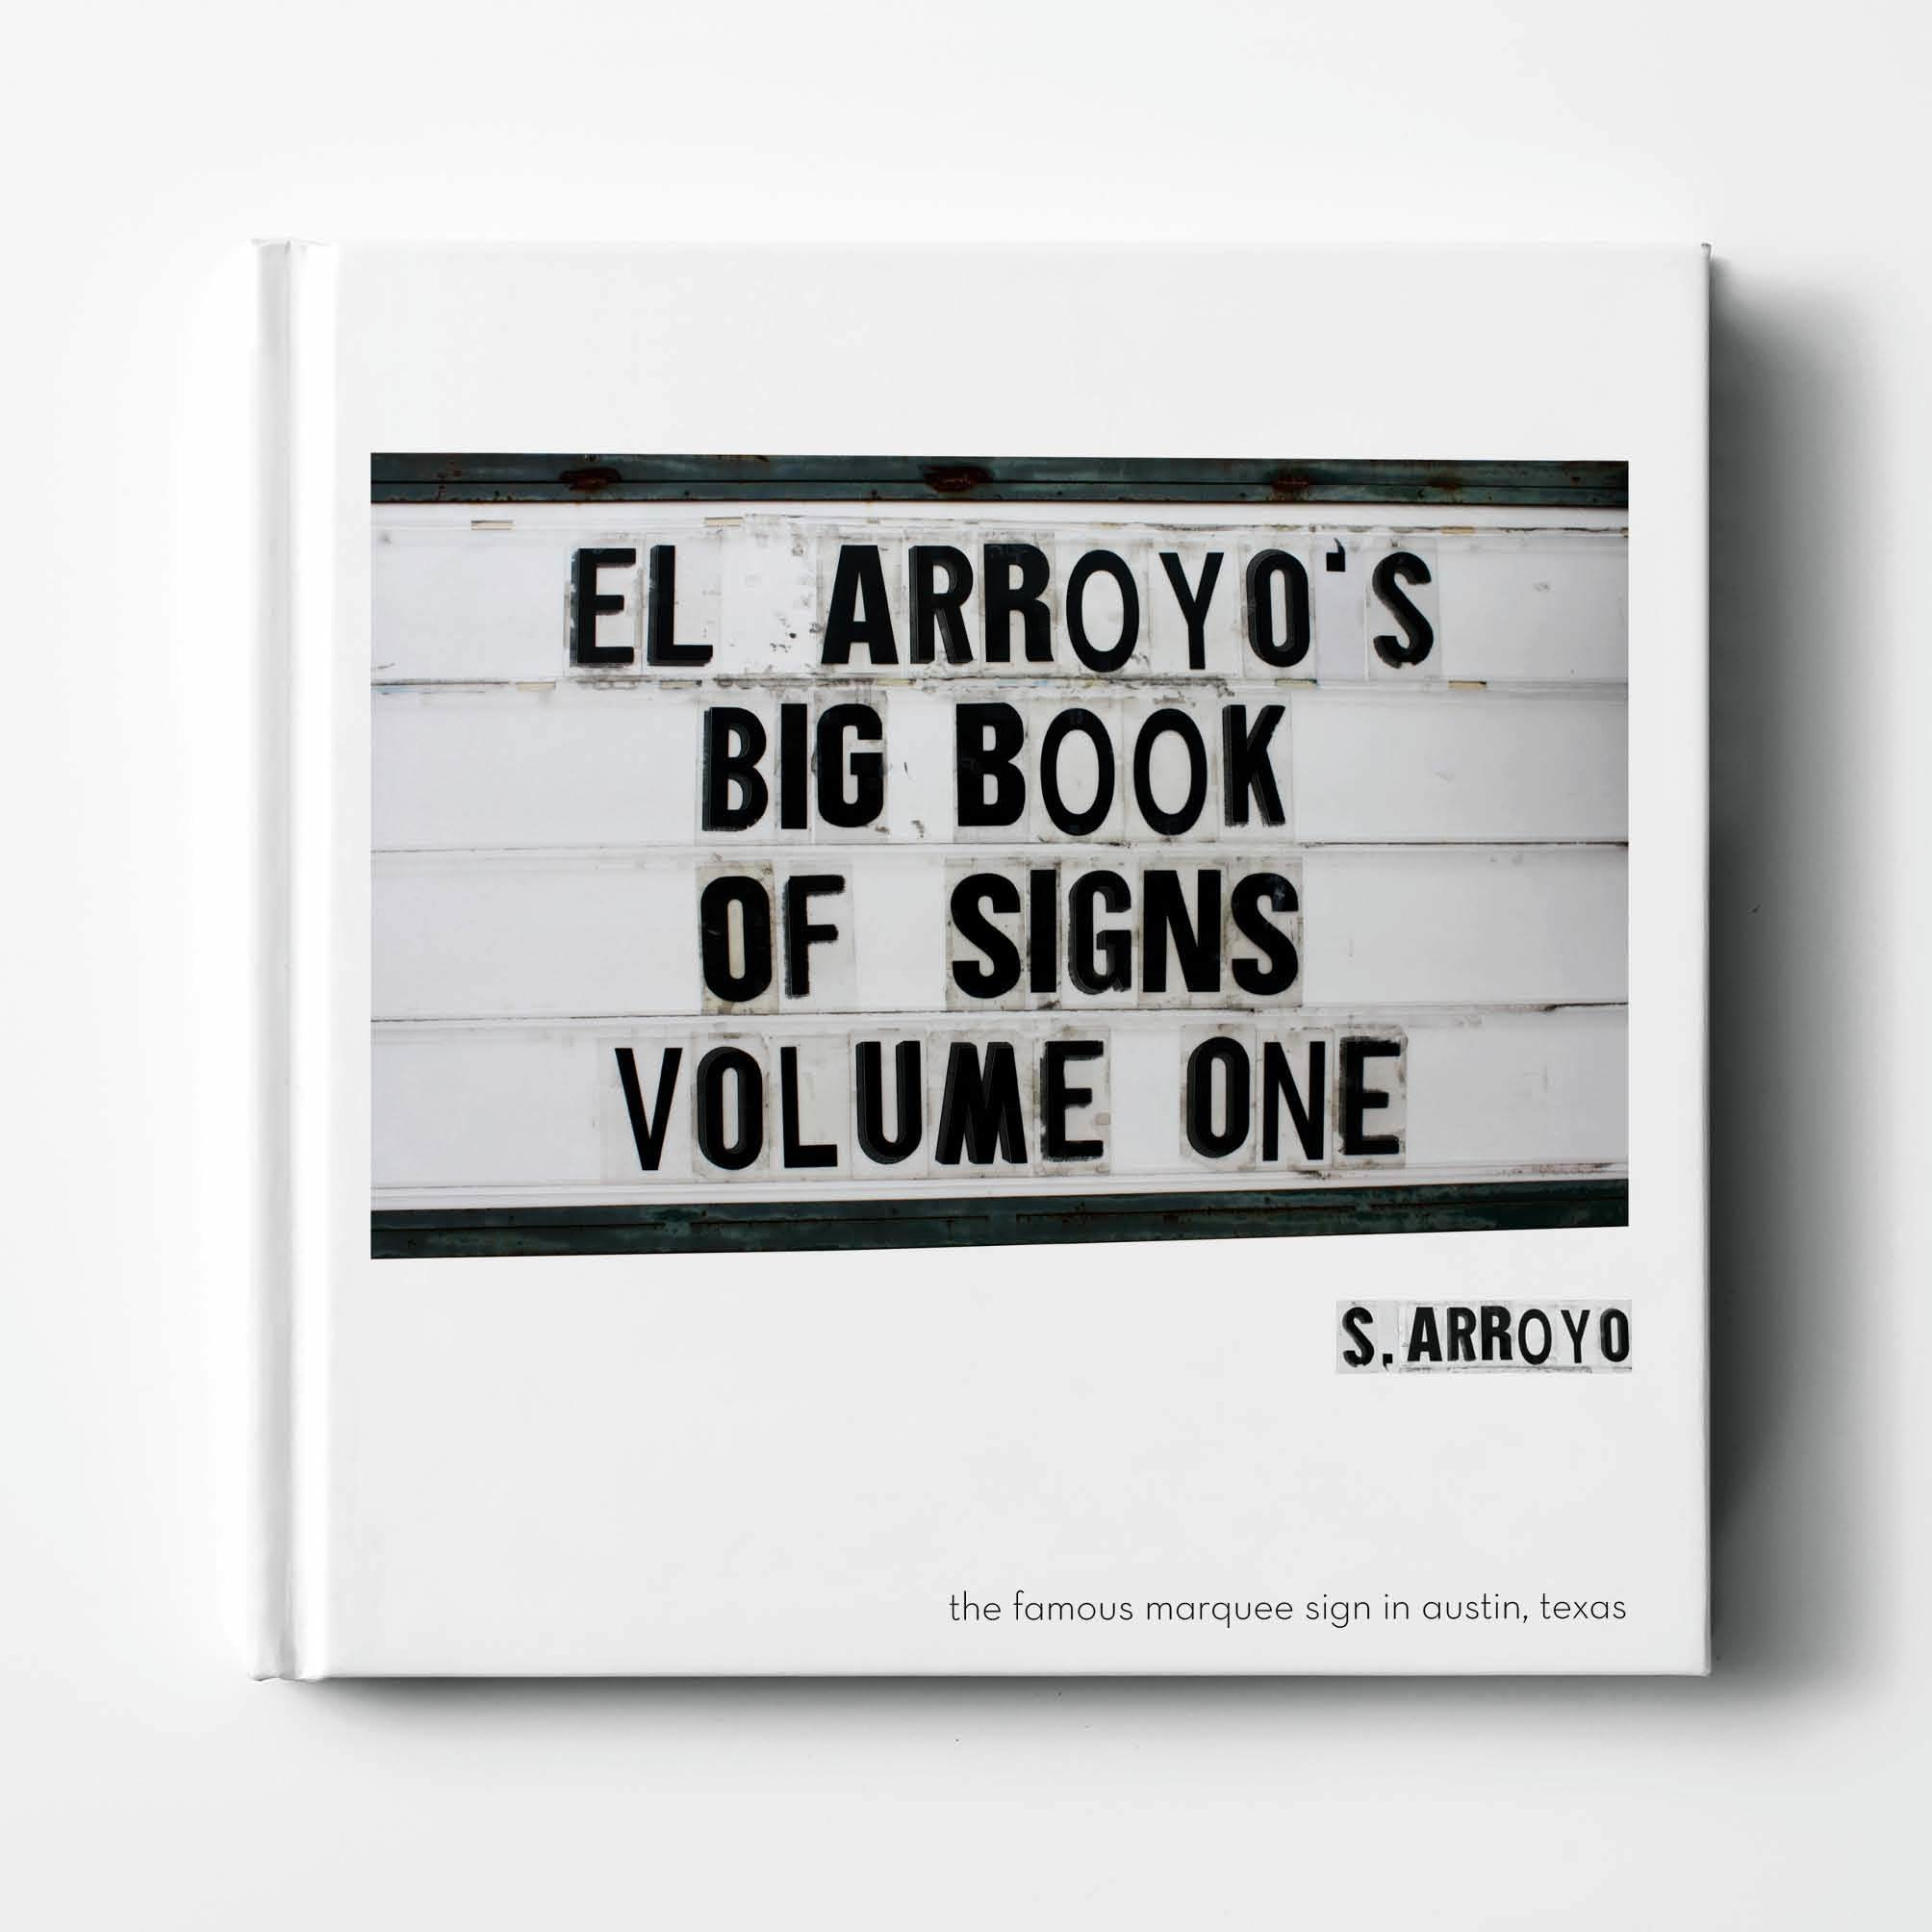 El Arroyo's Big Book of Signs Volume One 00010